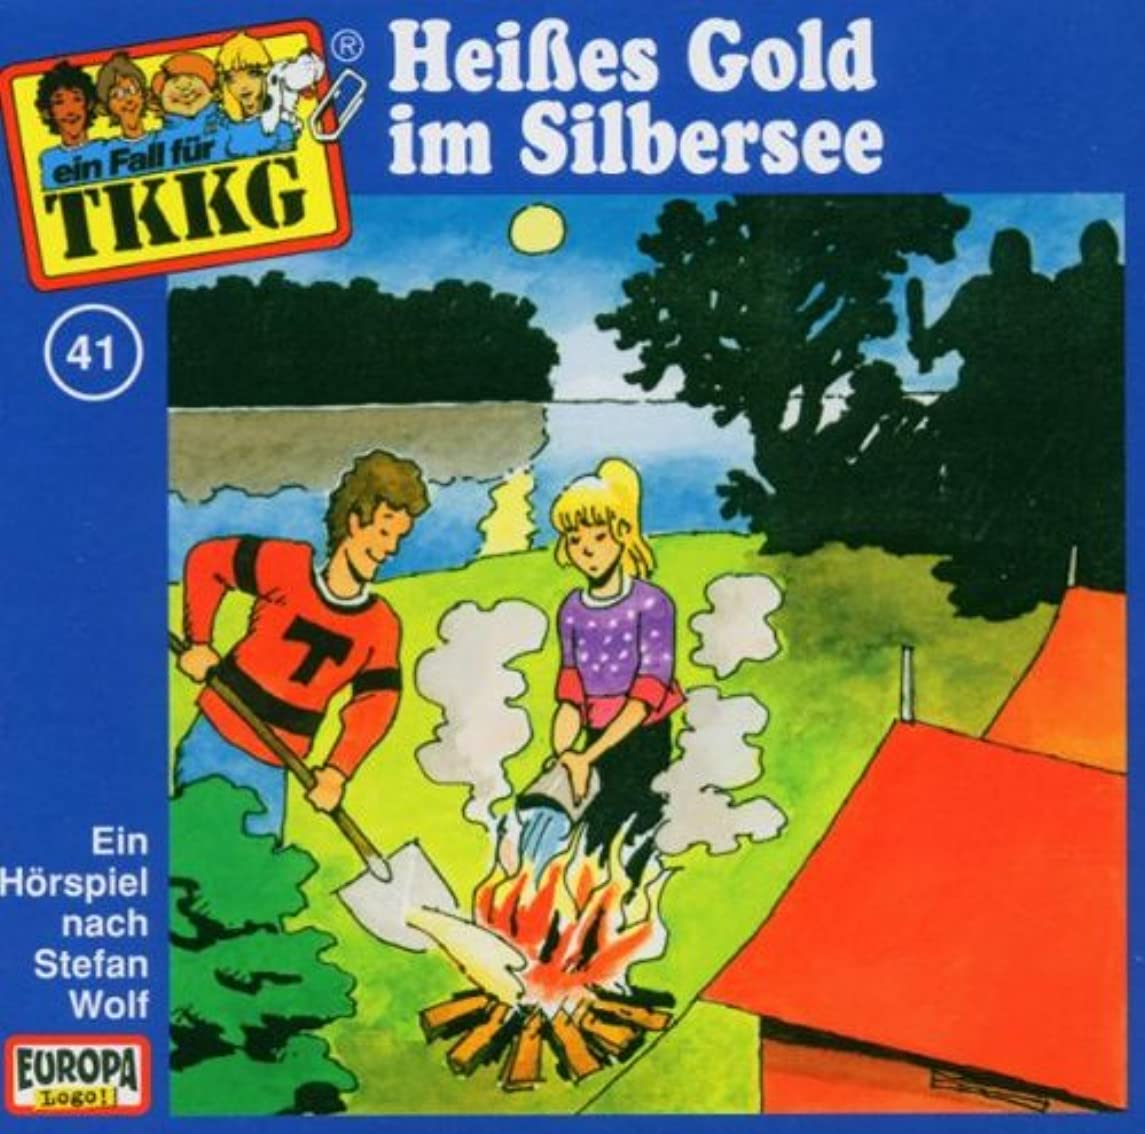 Heisses Gold Im Silbersee